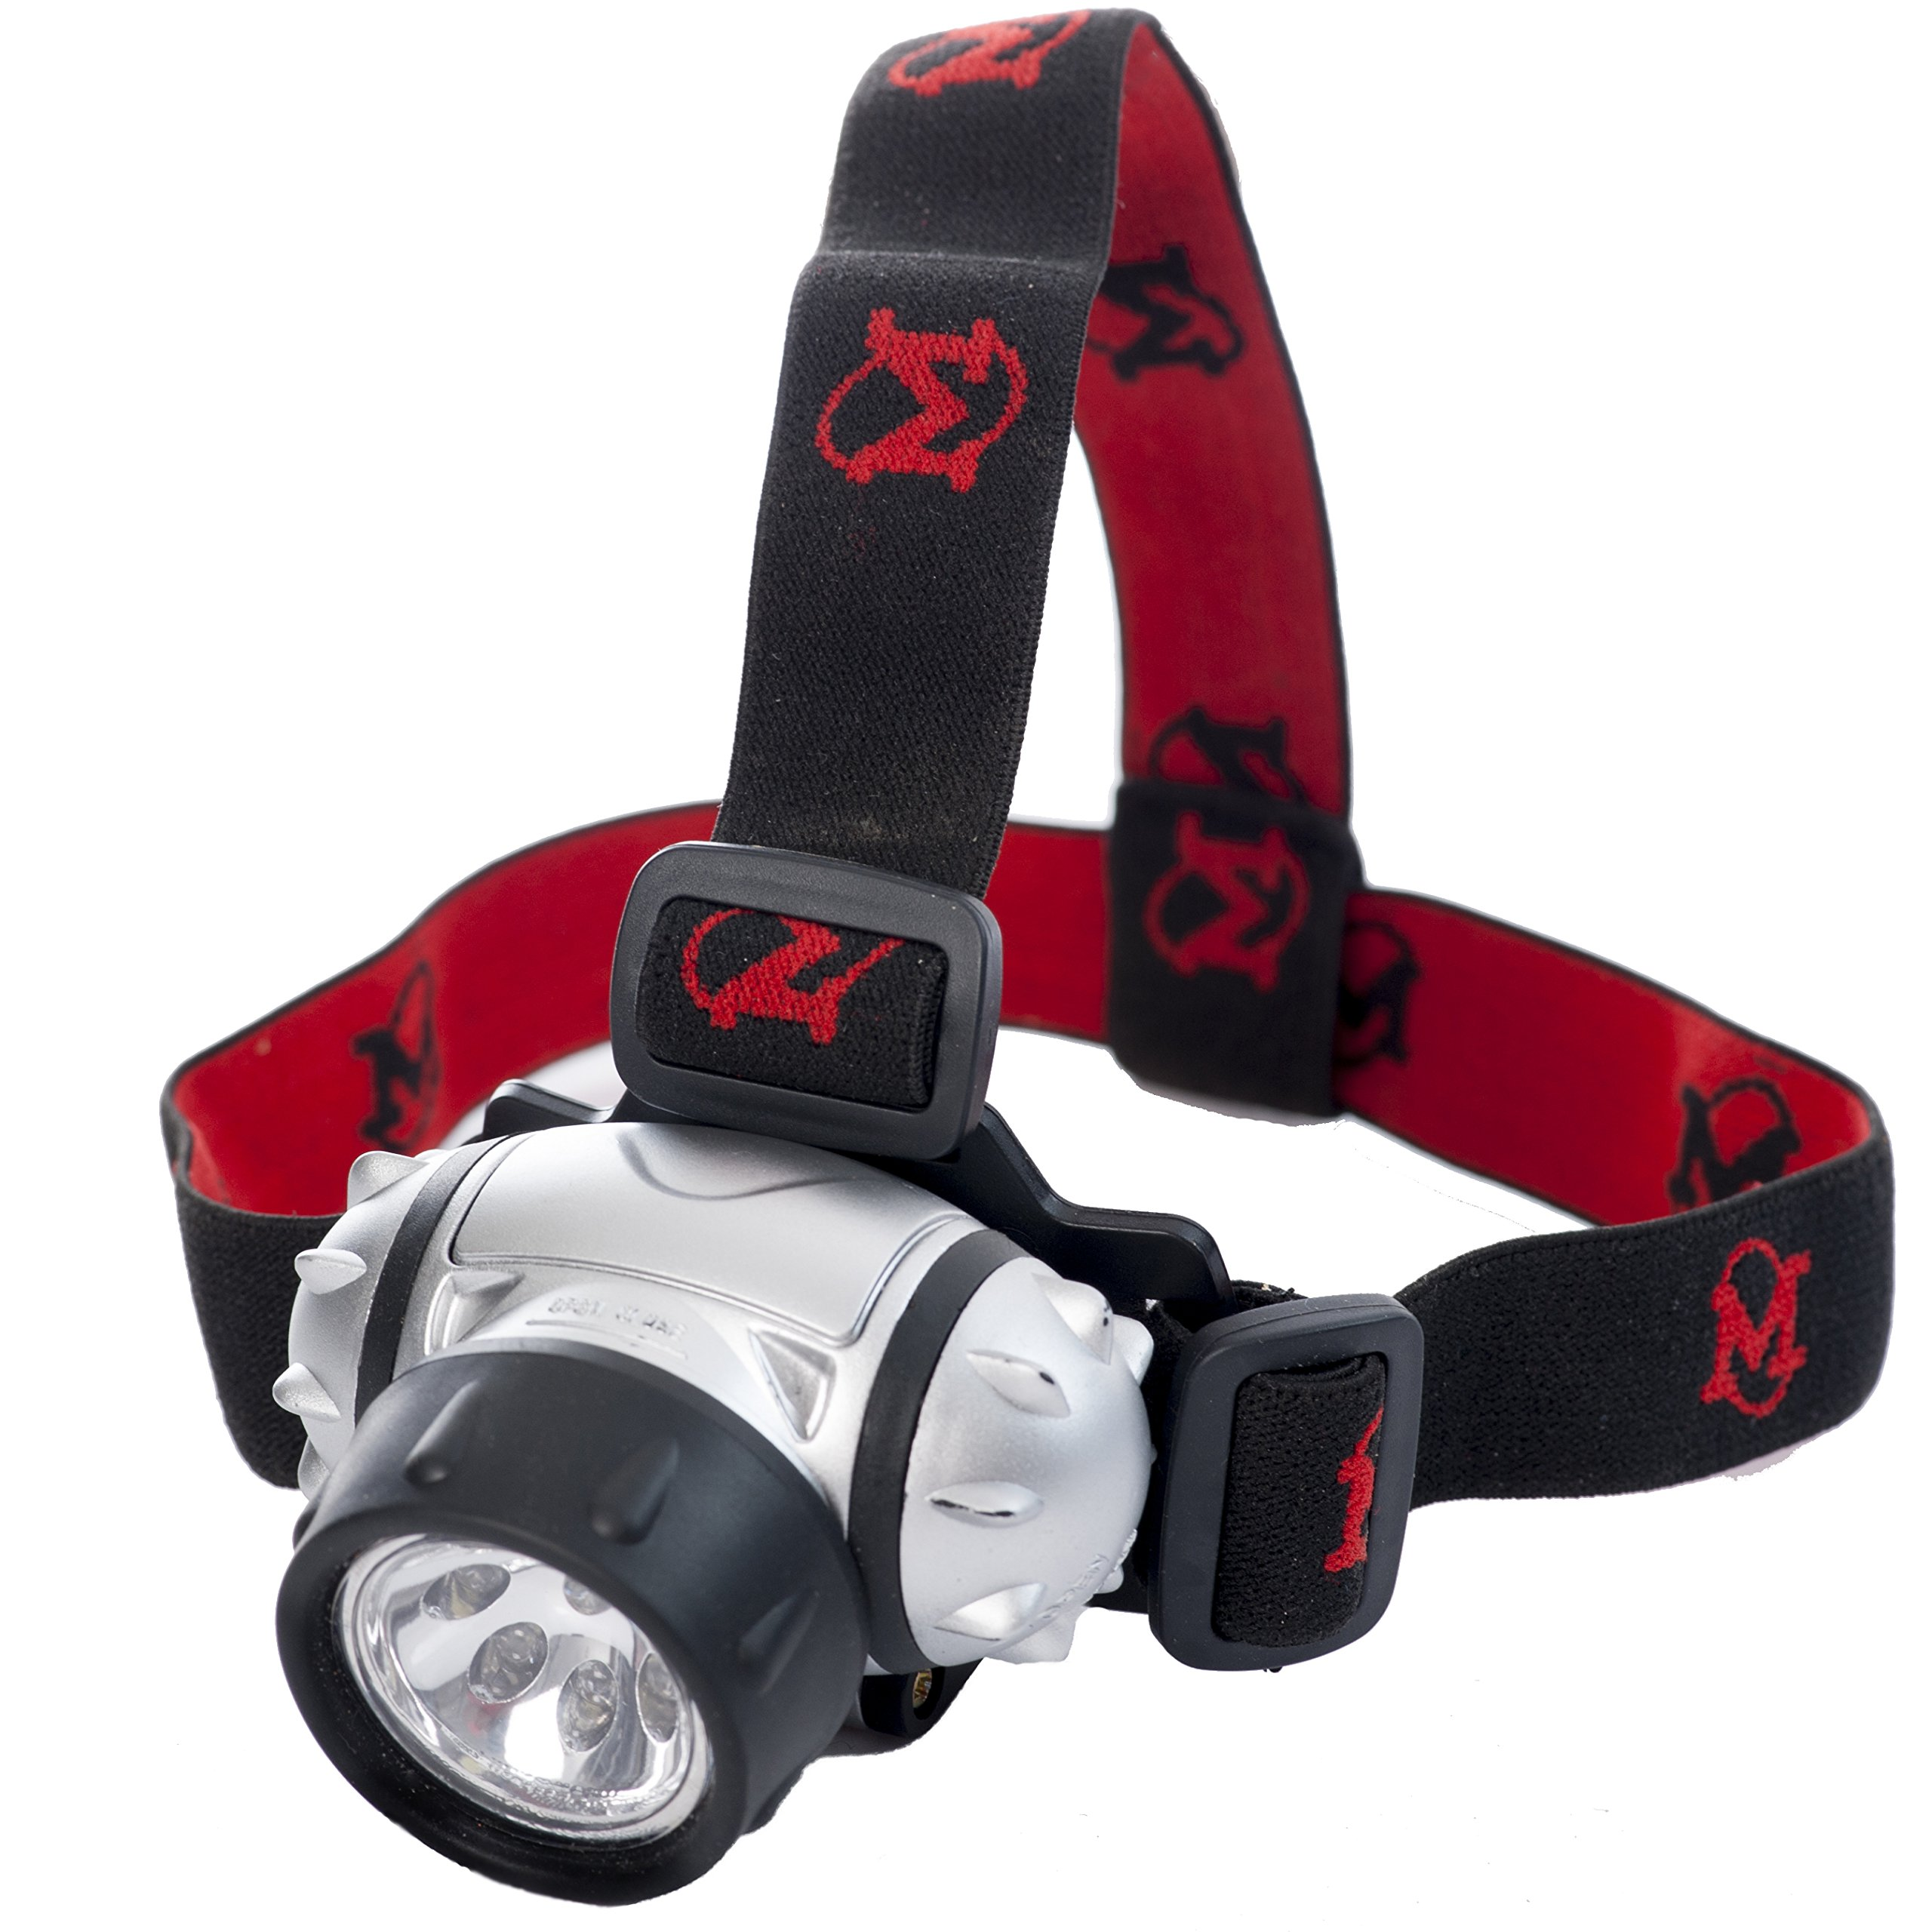 MhIL LED Hands-free Headlamp By (R) Battery Powered Flashlight/Headlight Great for Camping, Hiking, Working in the Dark, Using Without Hands Adjustable 3-way Light & Adjustable Head Strap